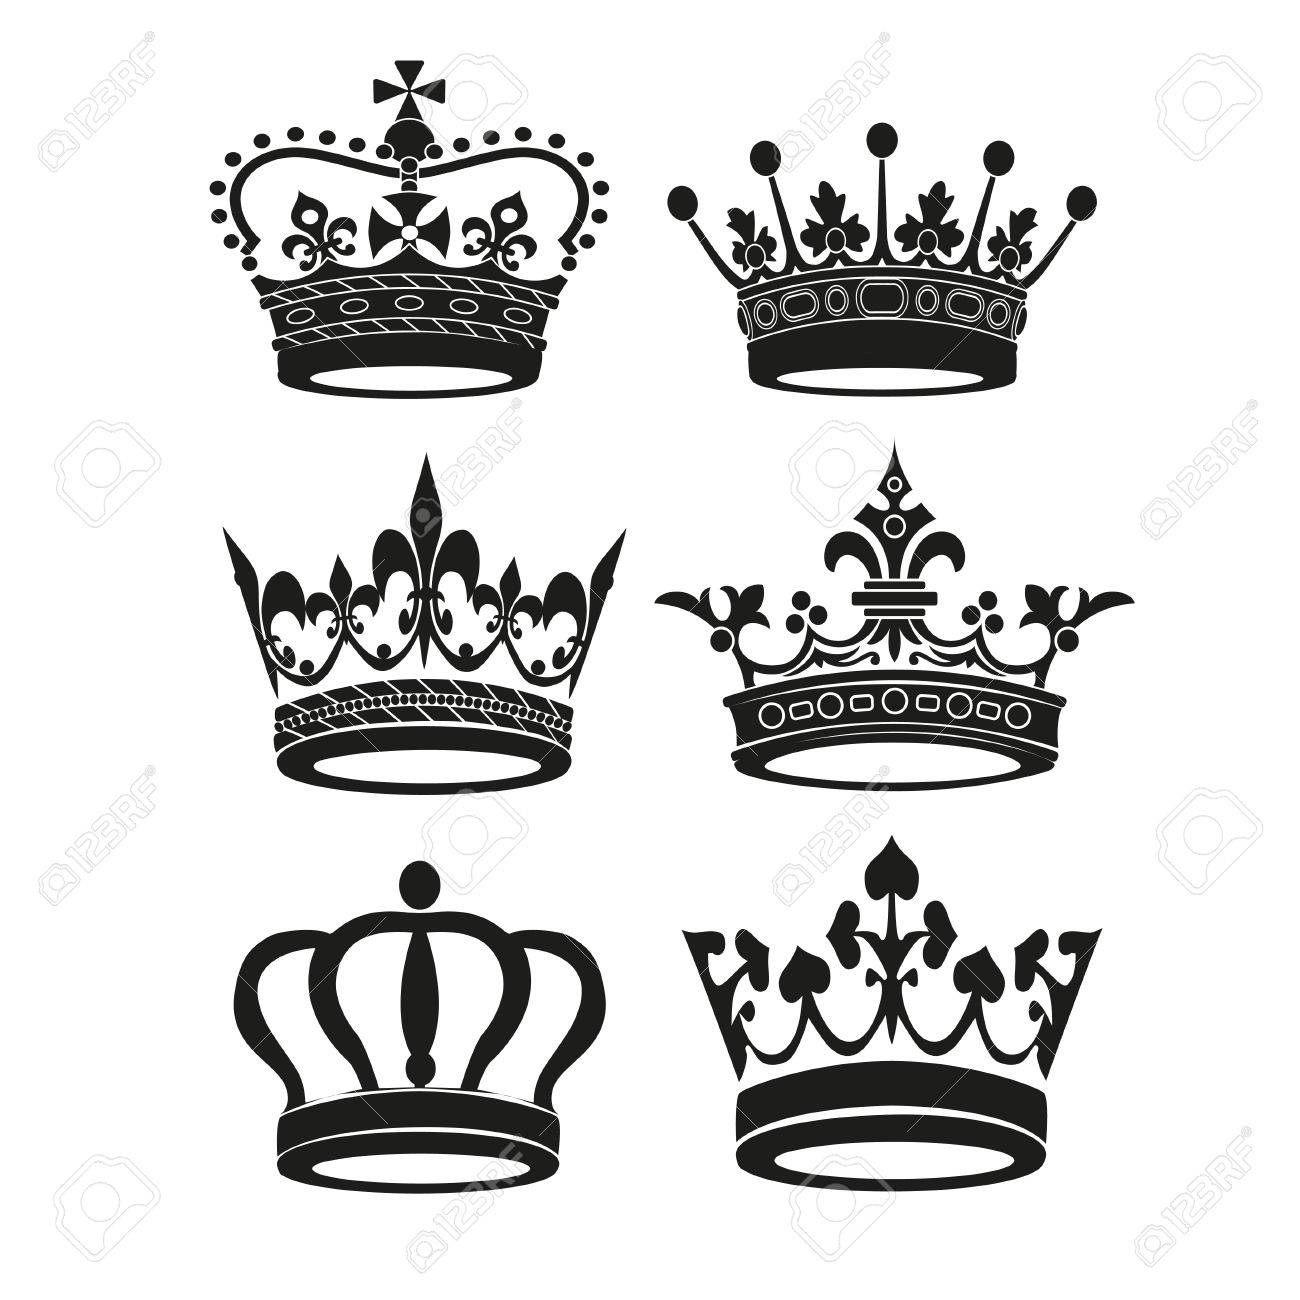 Crown Vector Illustration Royalty Free Cliparts, Vectors, And Stock ...